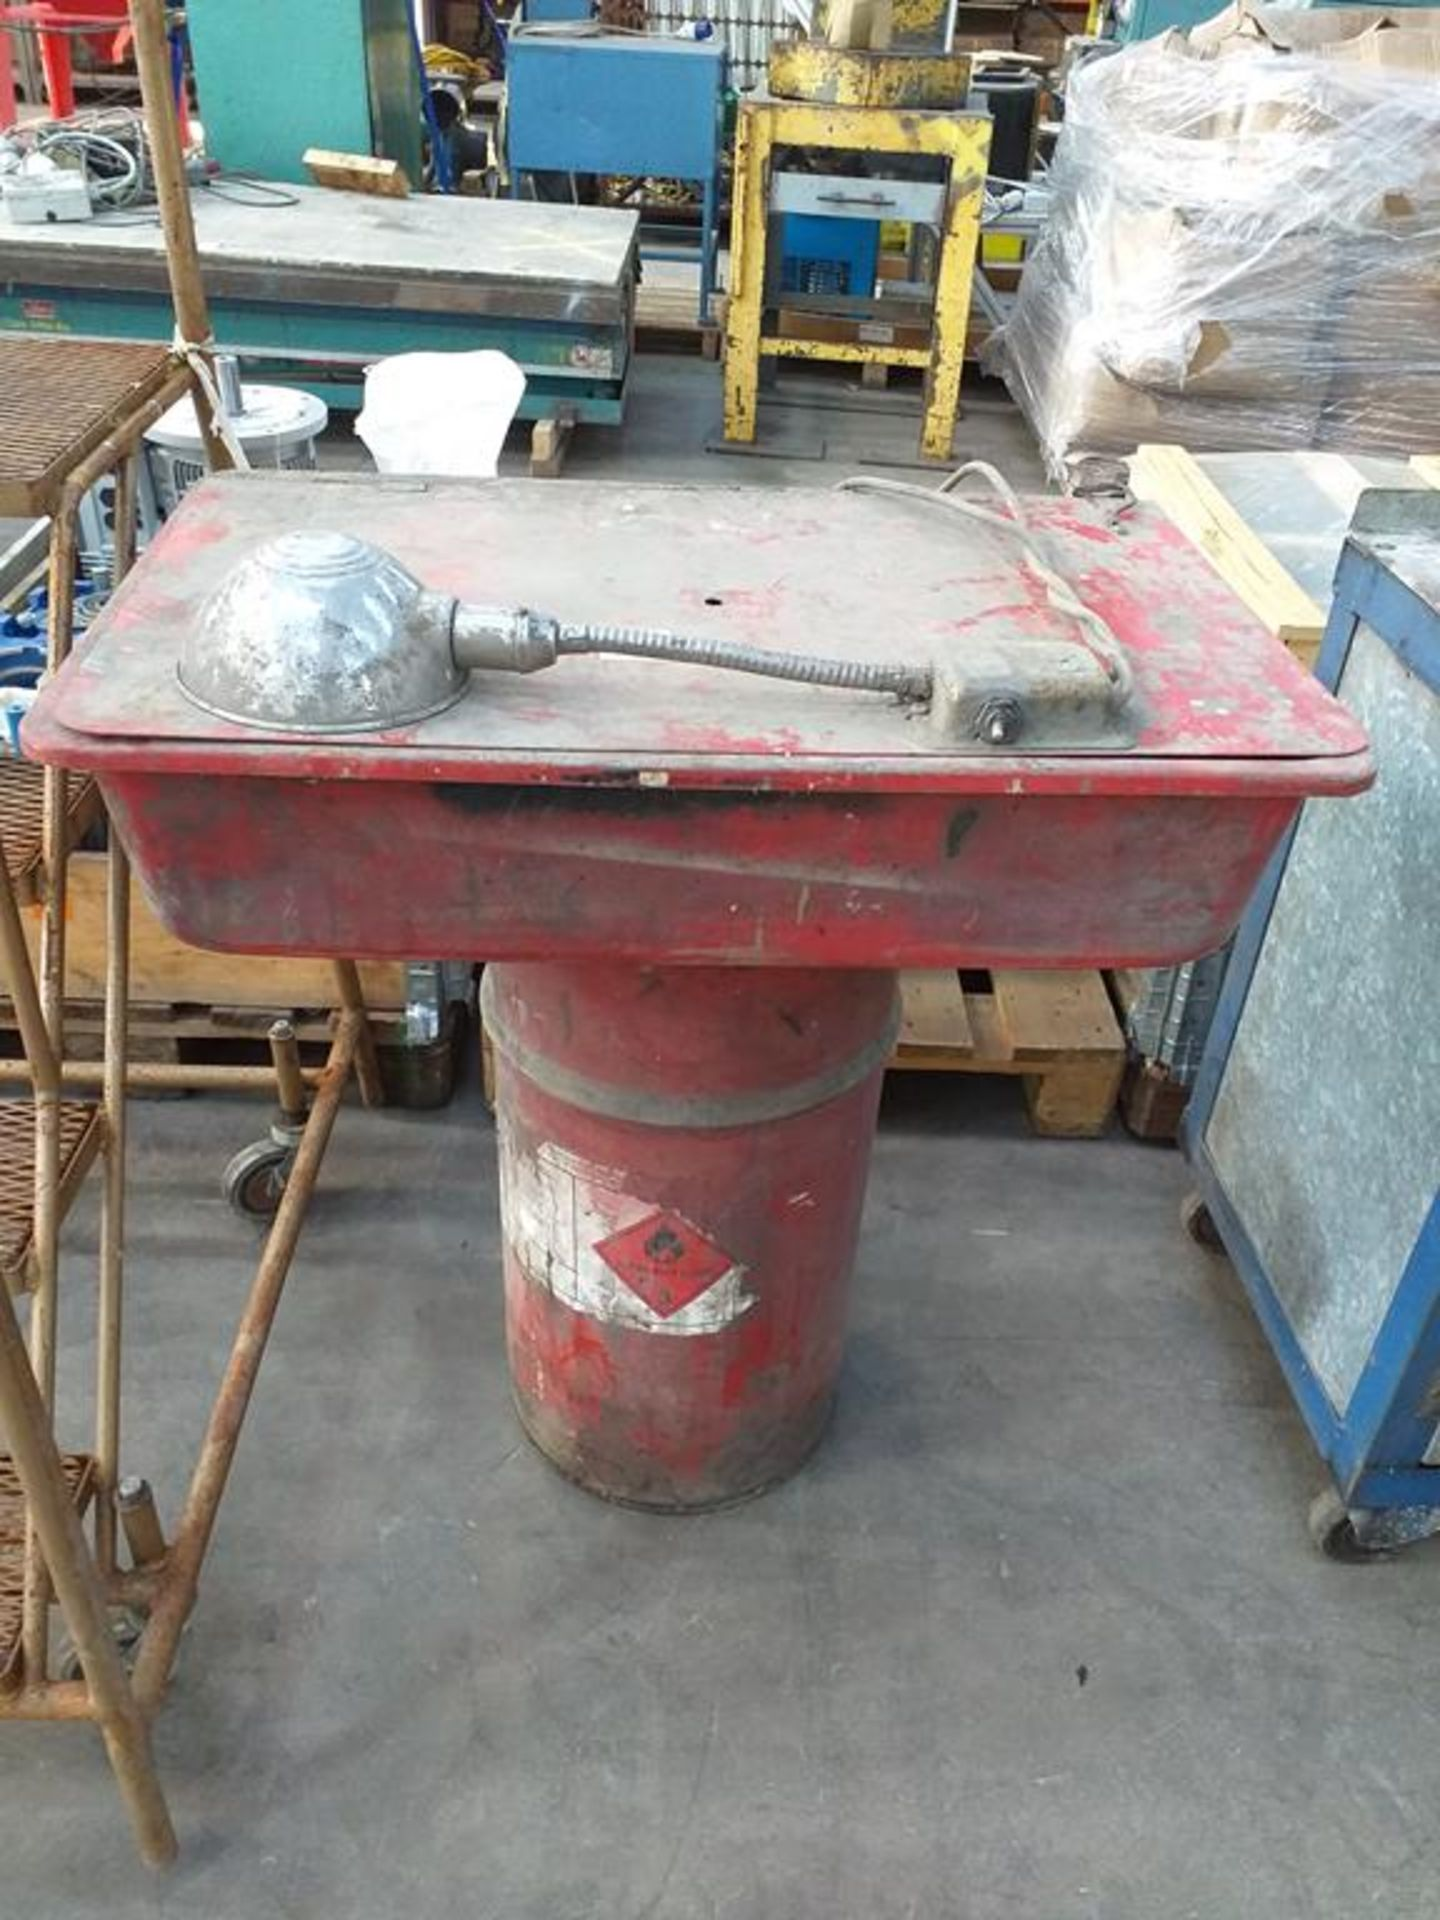 Lot 245 - A Parts Washer